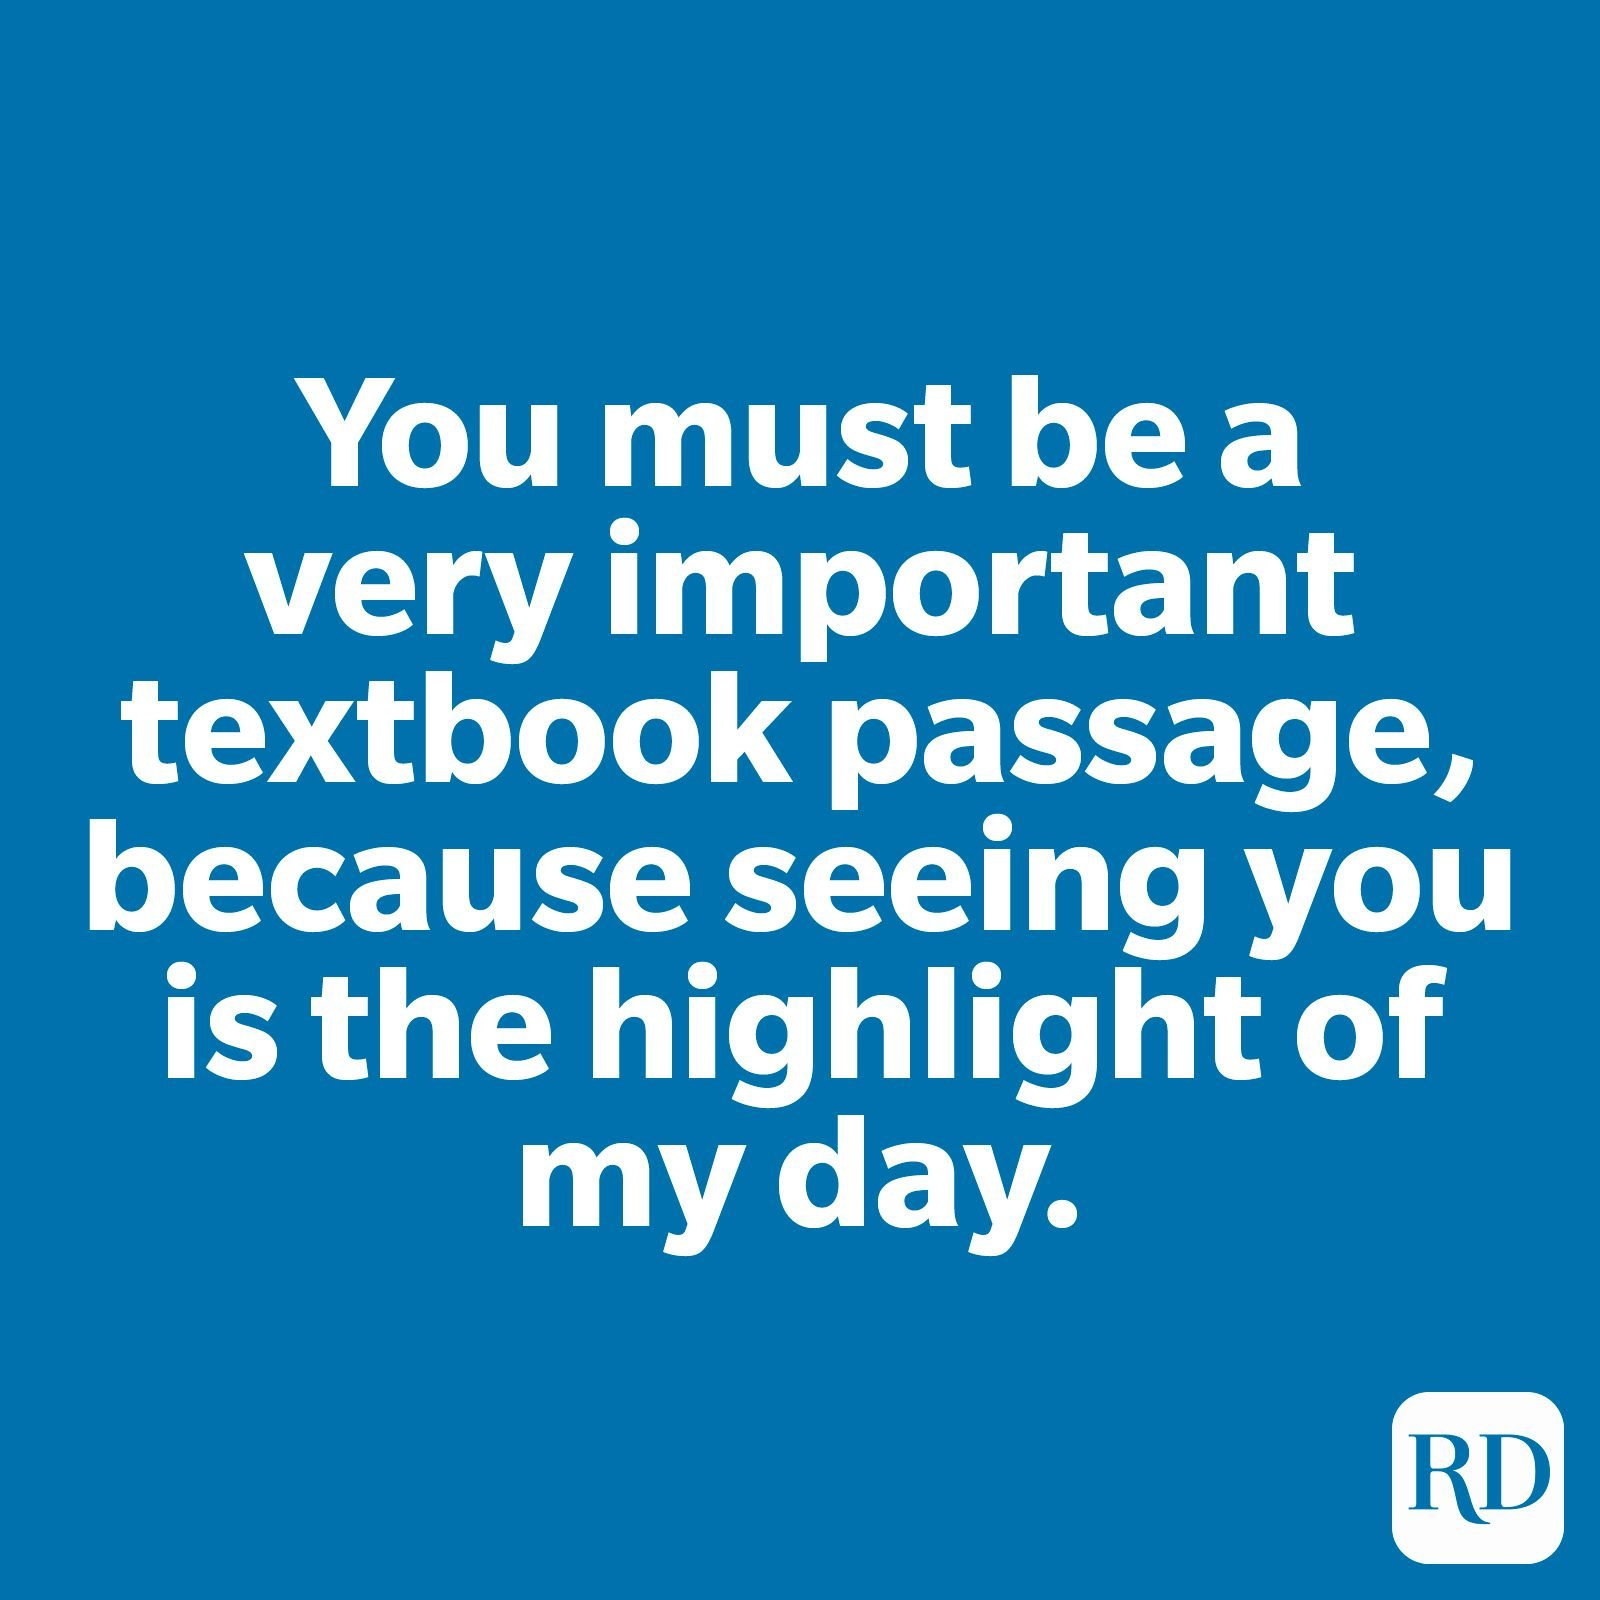 You must be a very important textbook passage, because seeing you is the highlight of my day.